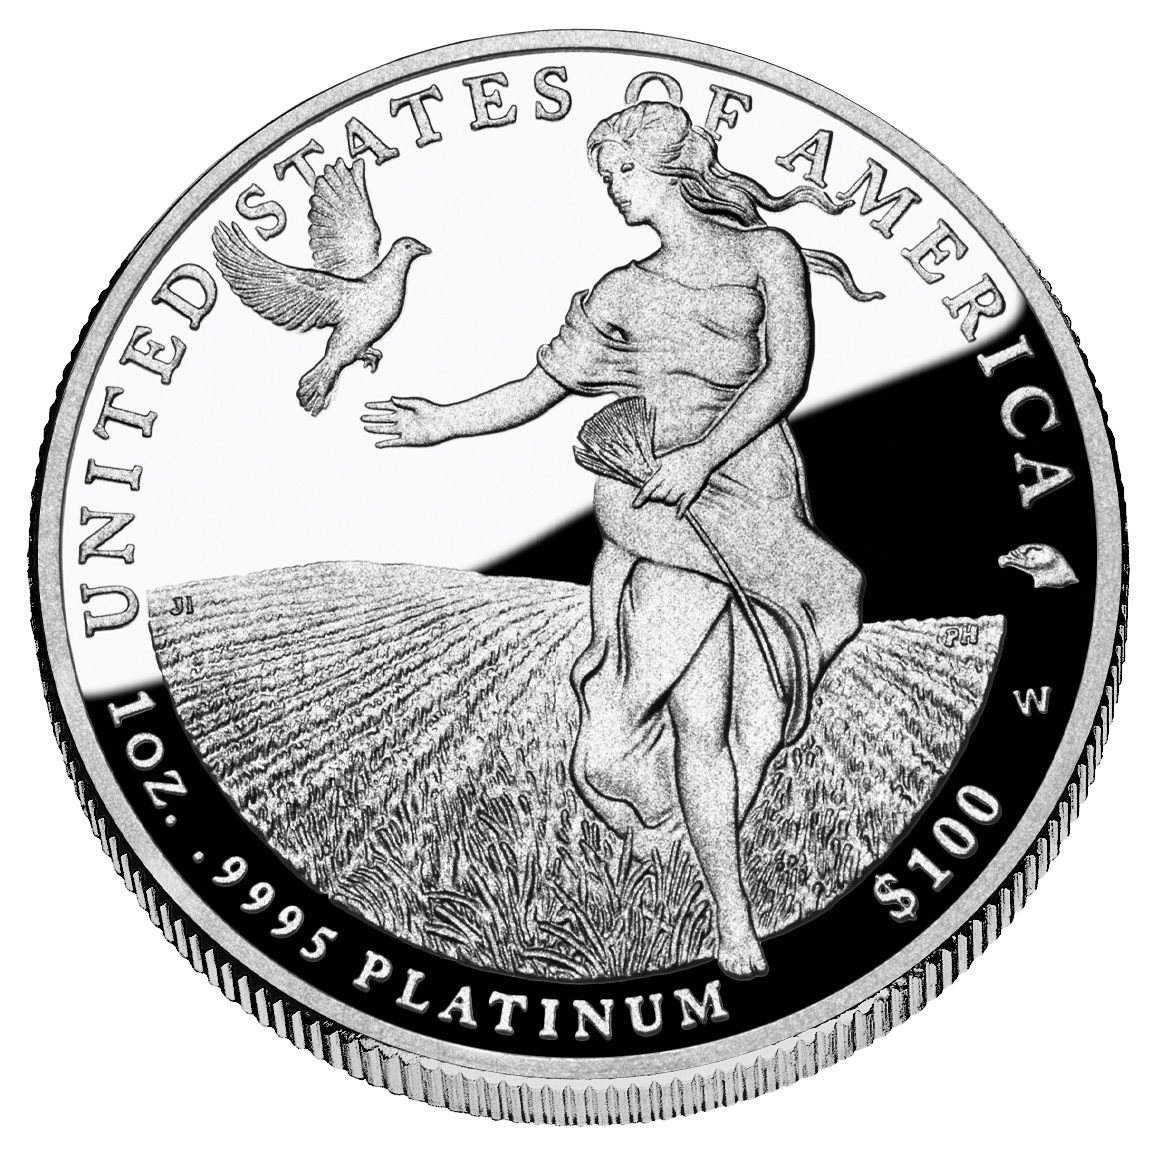 2011 American Eagle Platinum Proof Coin (US Mint image)